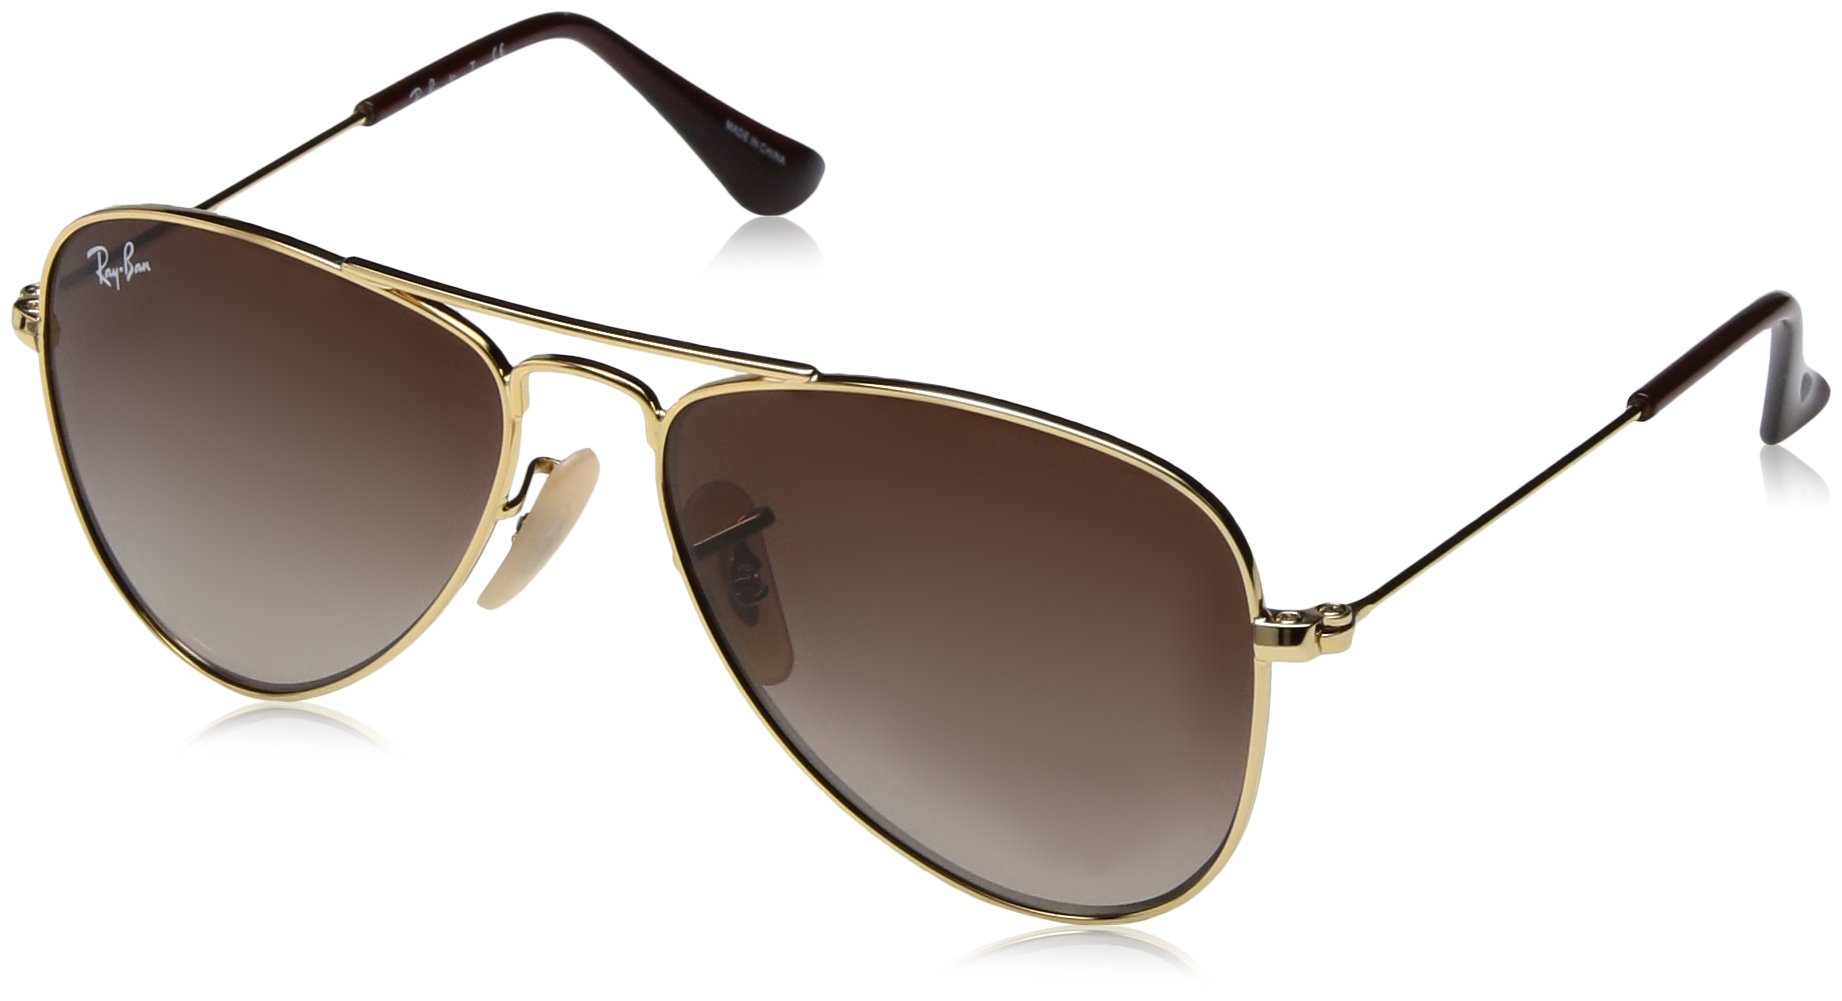 RAY-BAN JUNIOR Kids' RJ9506S Aviator Kids Sunglasses, Gold/Brown Gradient, 50 mm by RAY-BAN JUNIOR